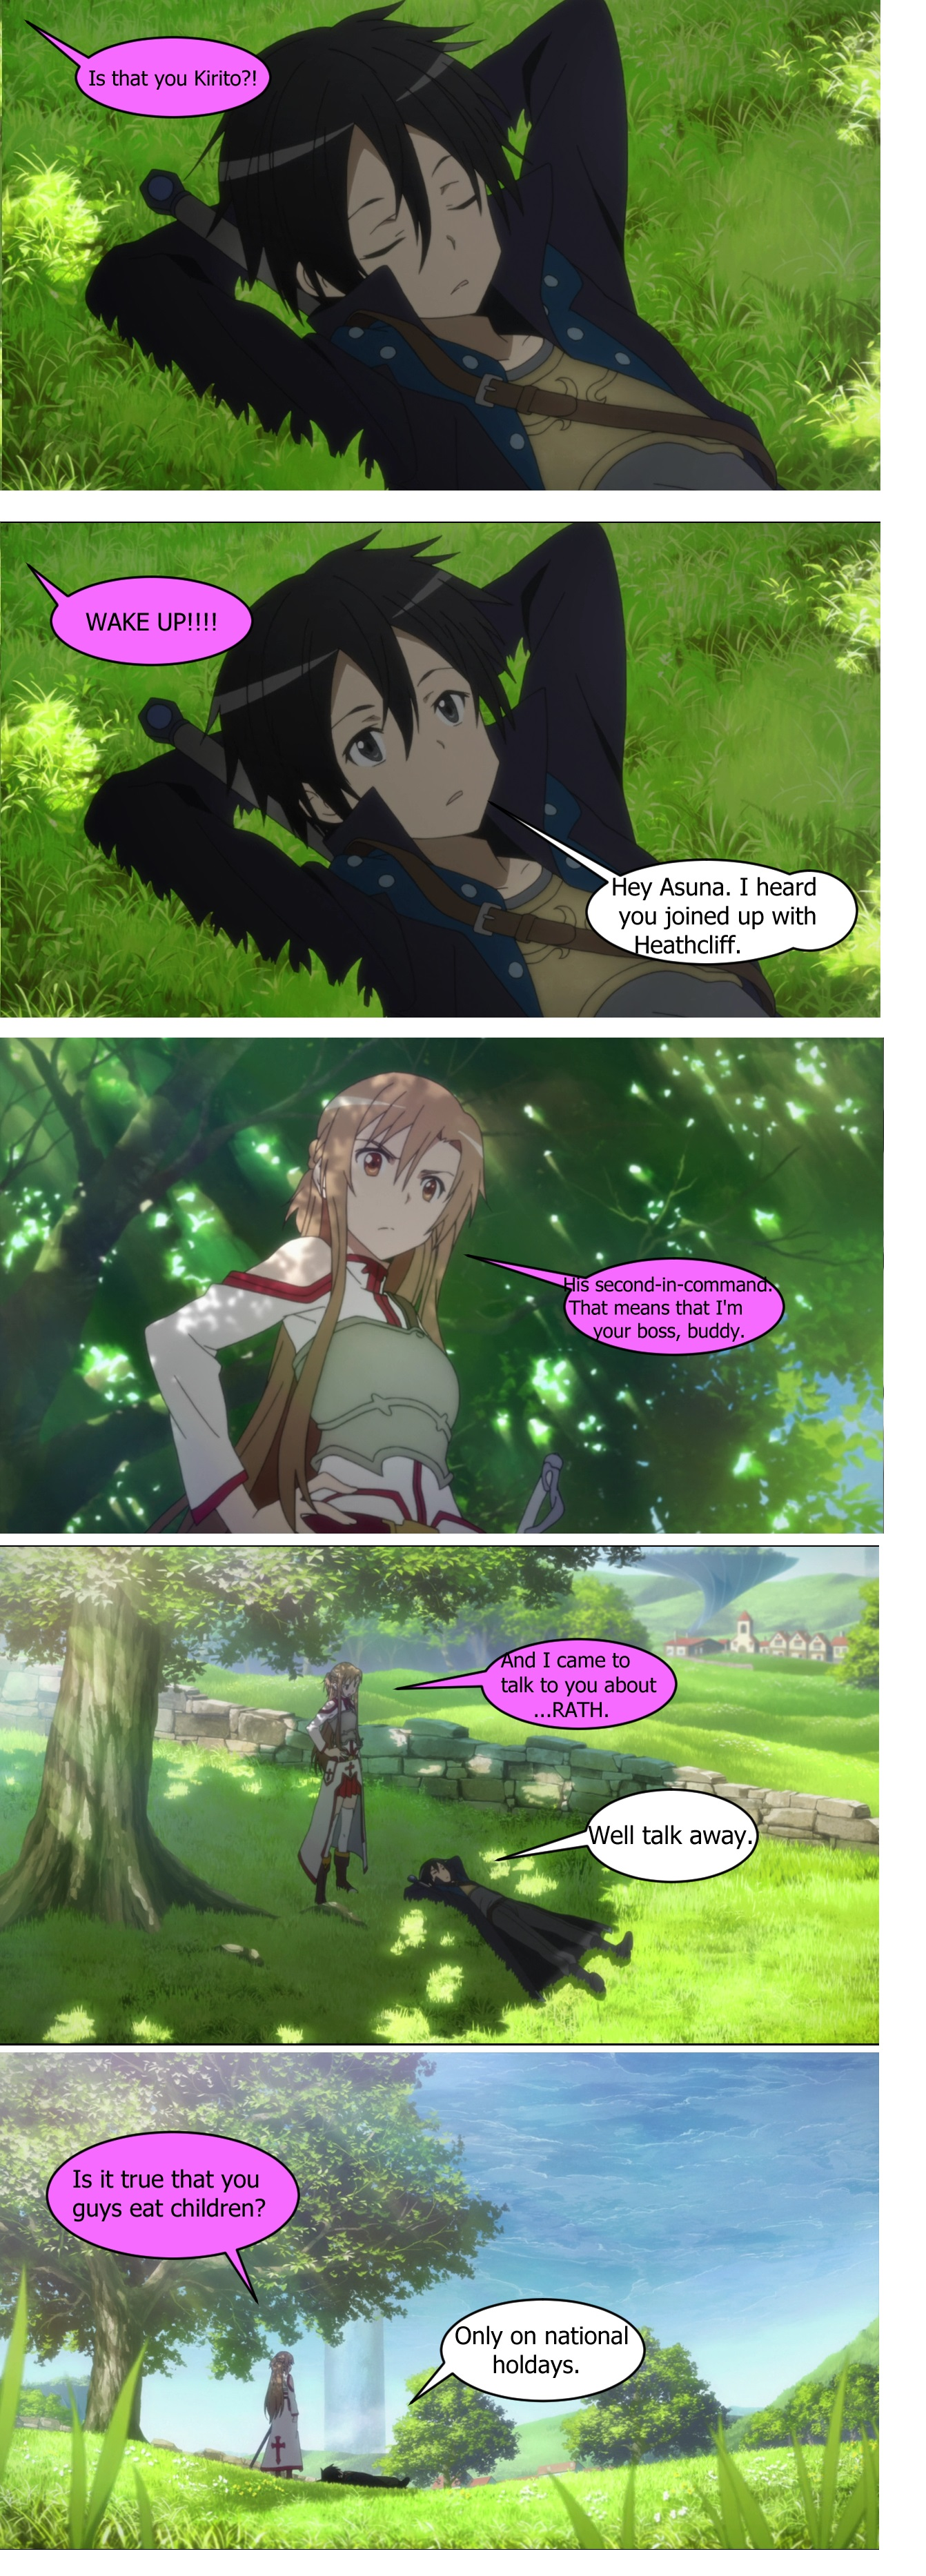 Asuna questions the frequency of child-eating.